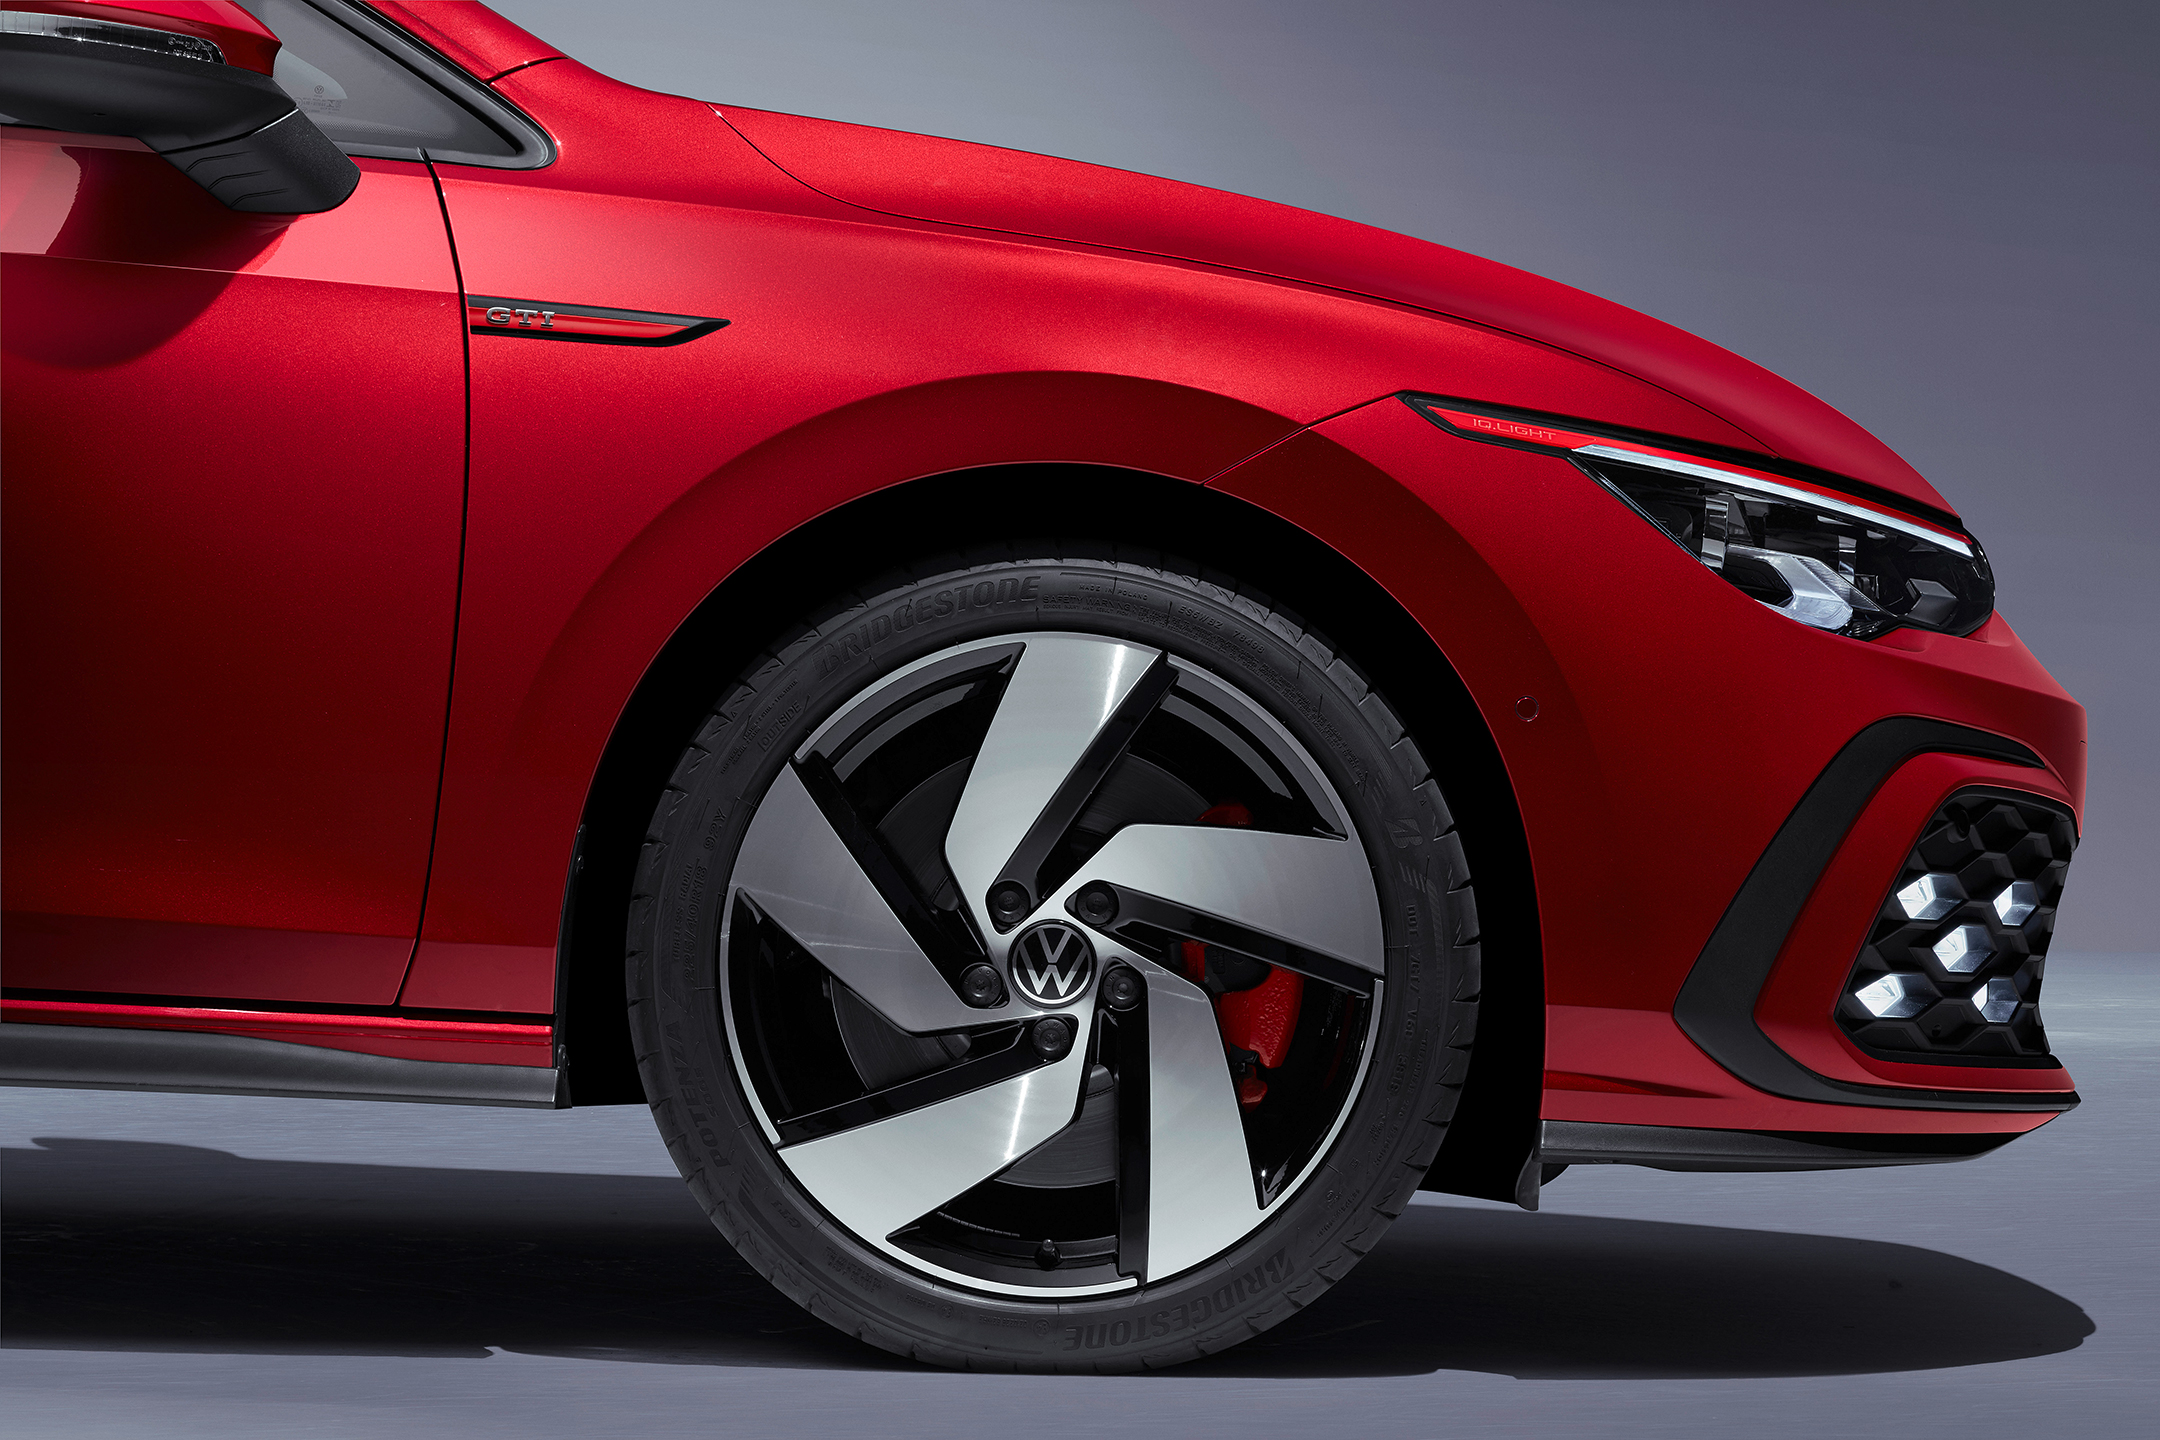 Volkswagen Golf GTI - 2020 - chassis / châssis - wheel / jante